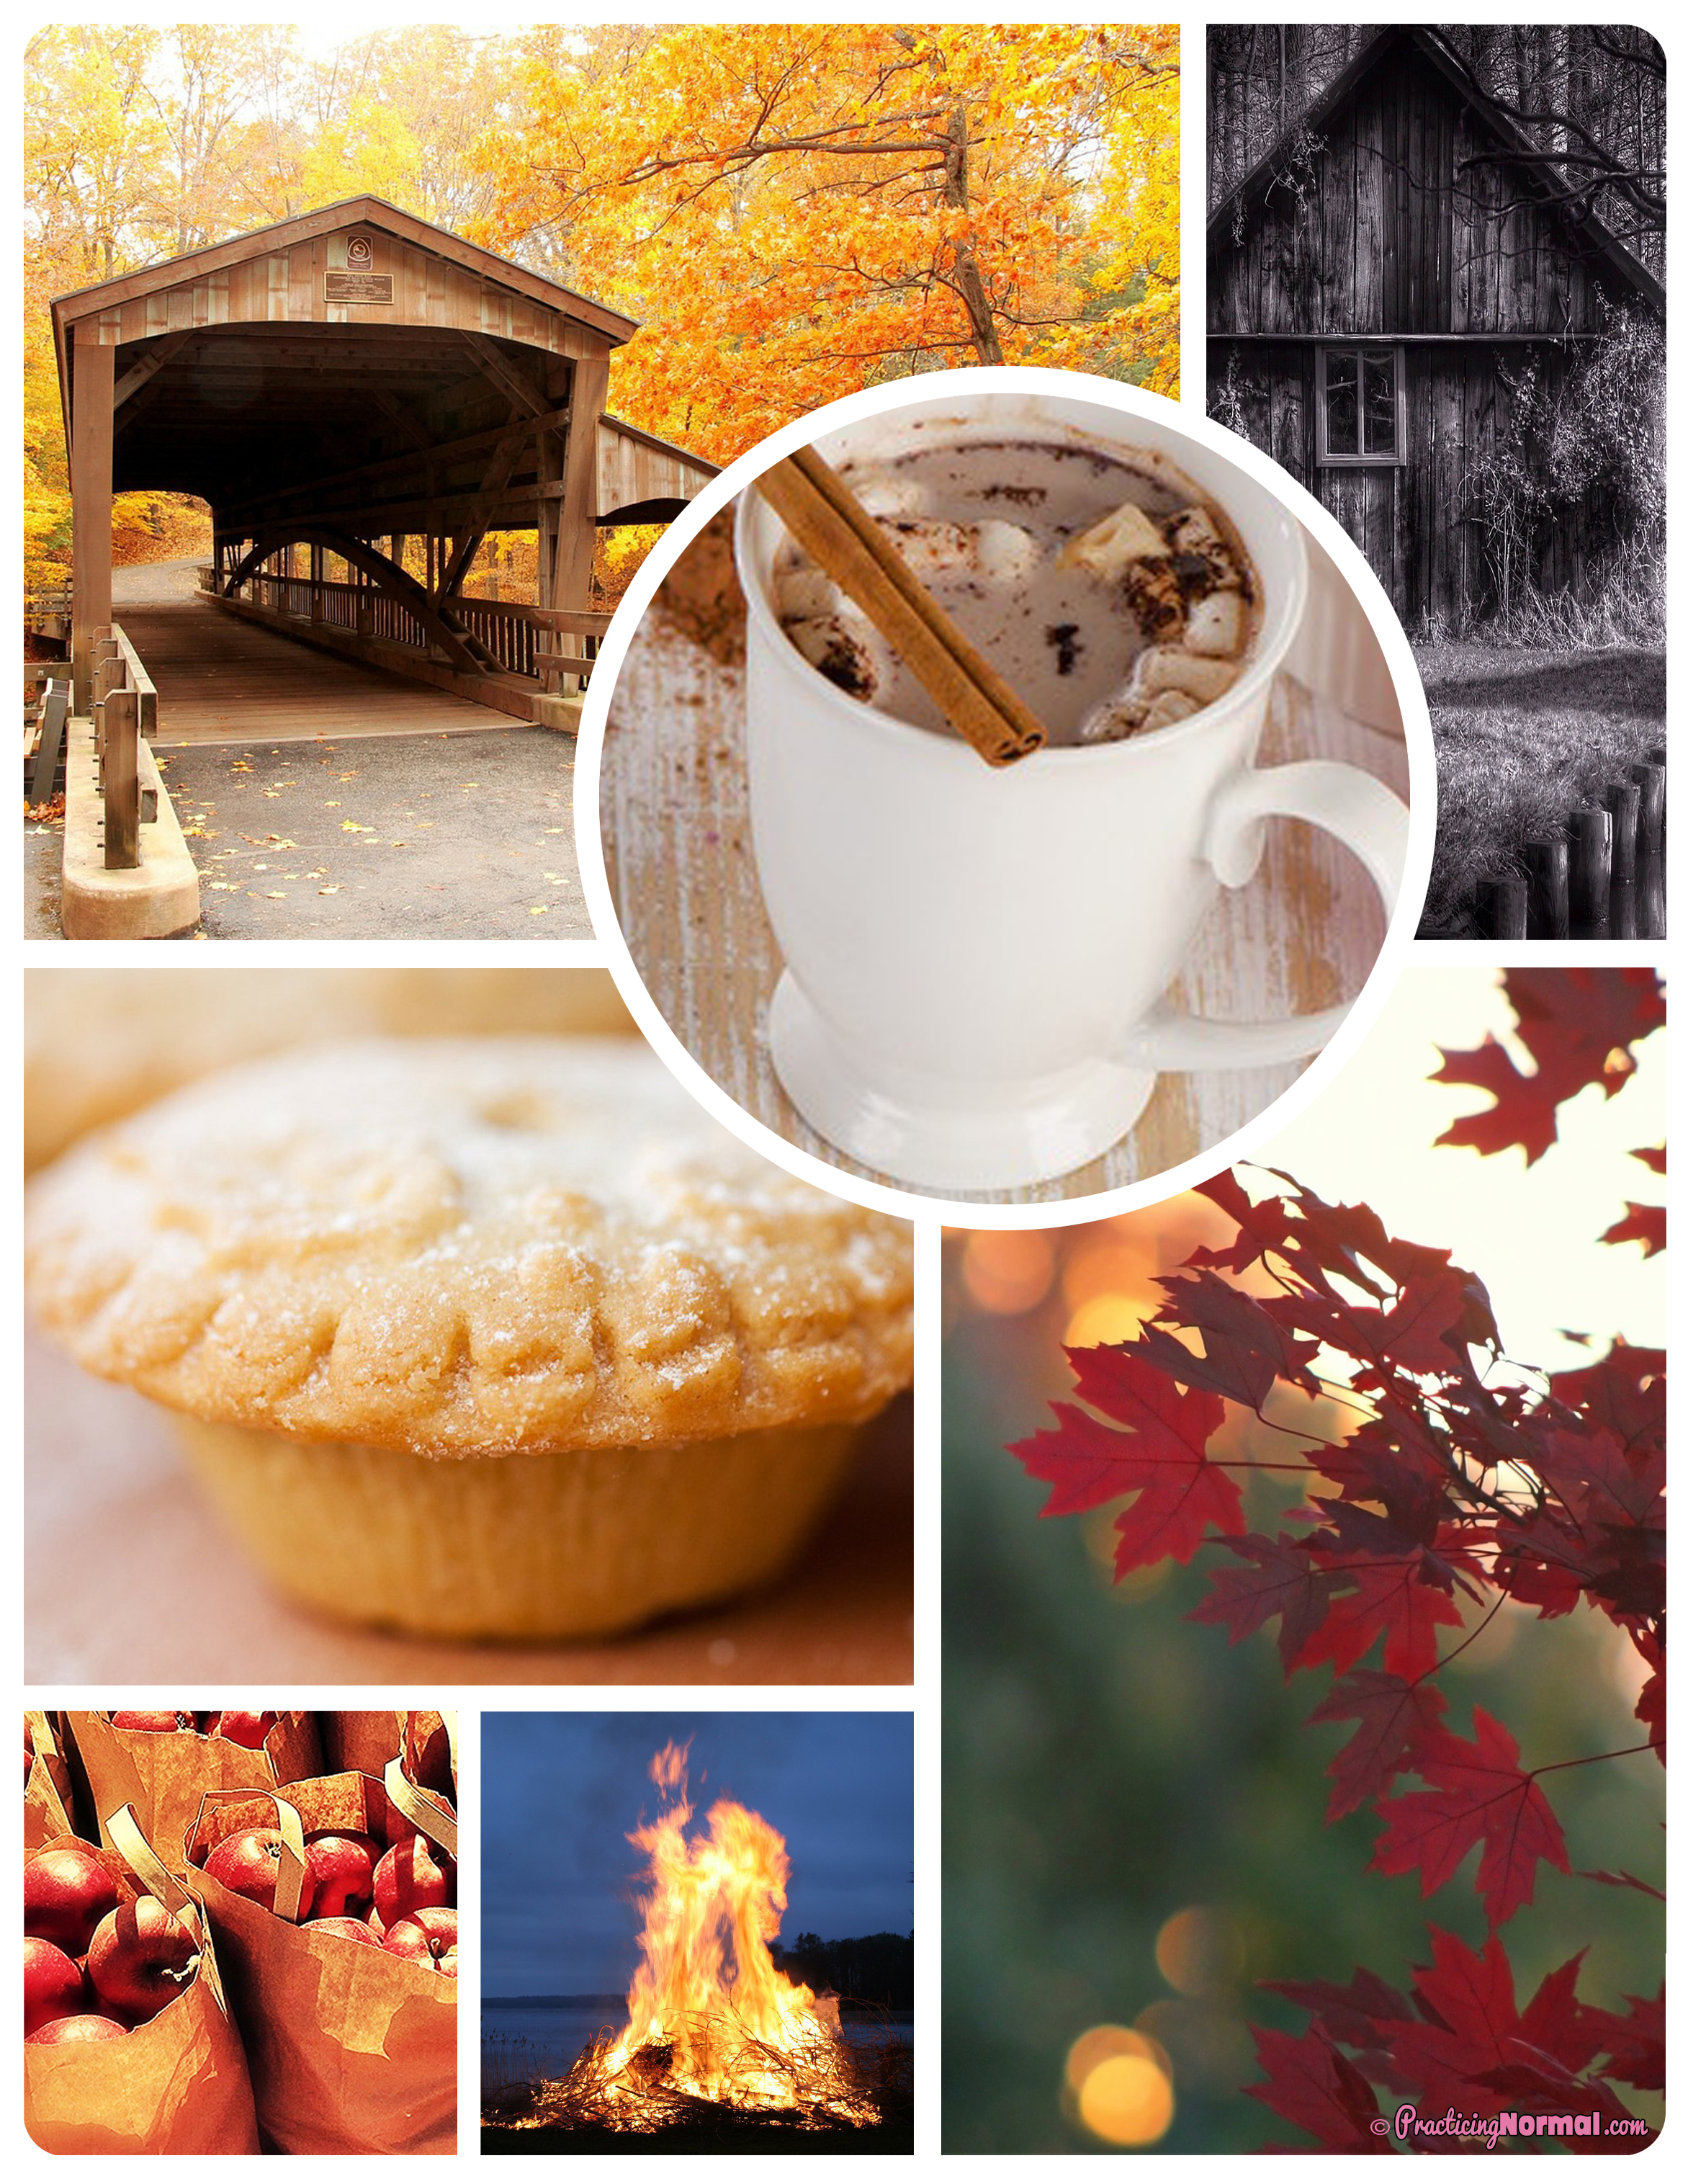 Hot Chocolate, road trip, haunted house, bake pies, autumn leaves, apples, bonfire, autumn, season, seasonal